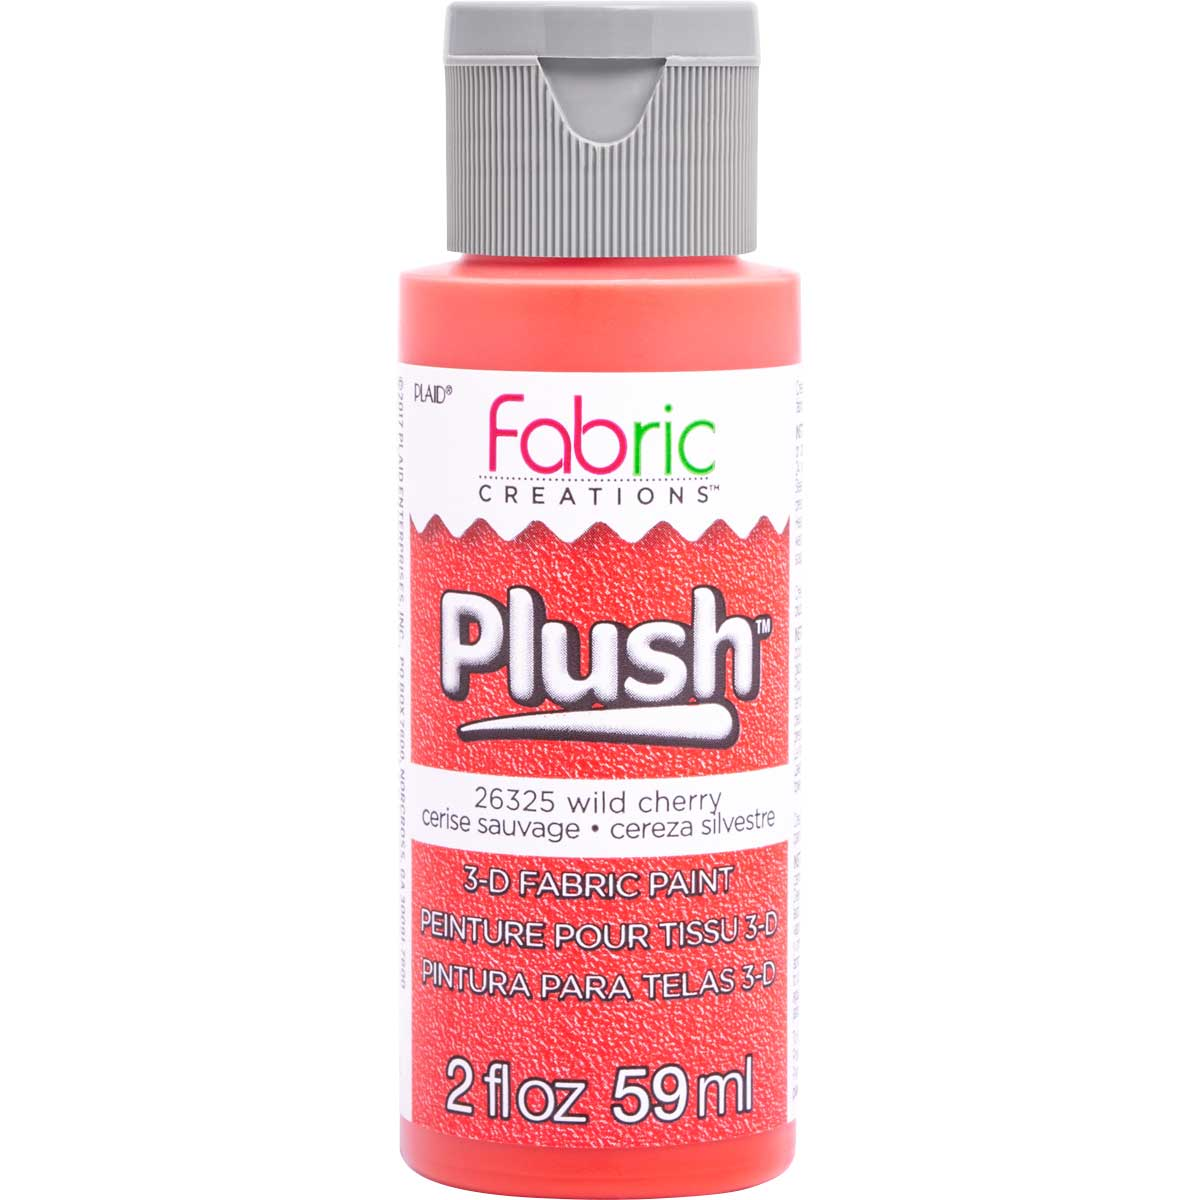 Fabric Creations™ Plush™ 3-D Fabric Paints - Wild Cherry, 2 oz. - 26325